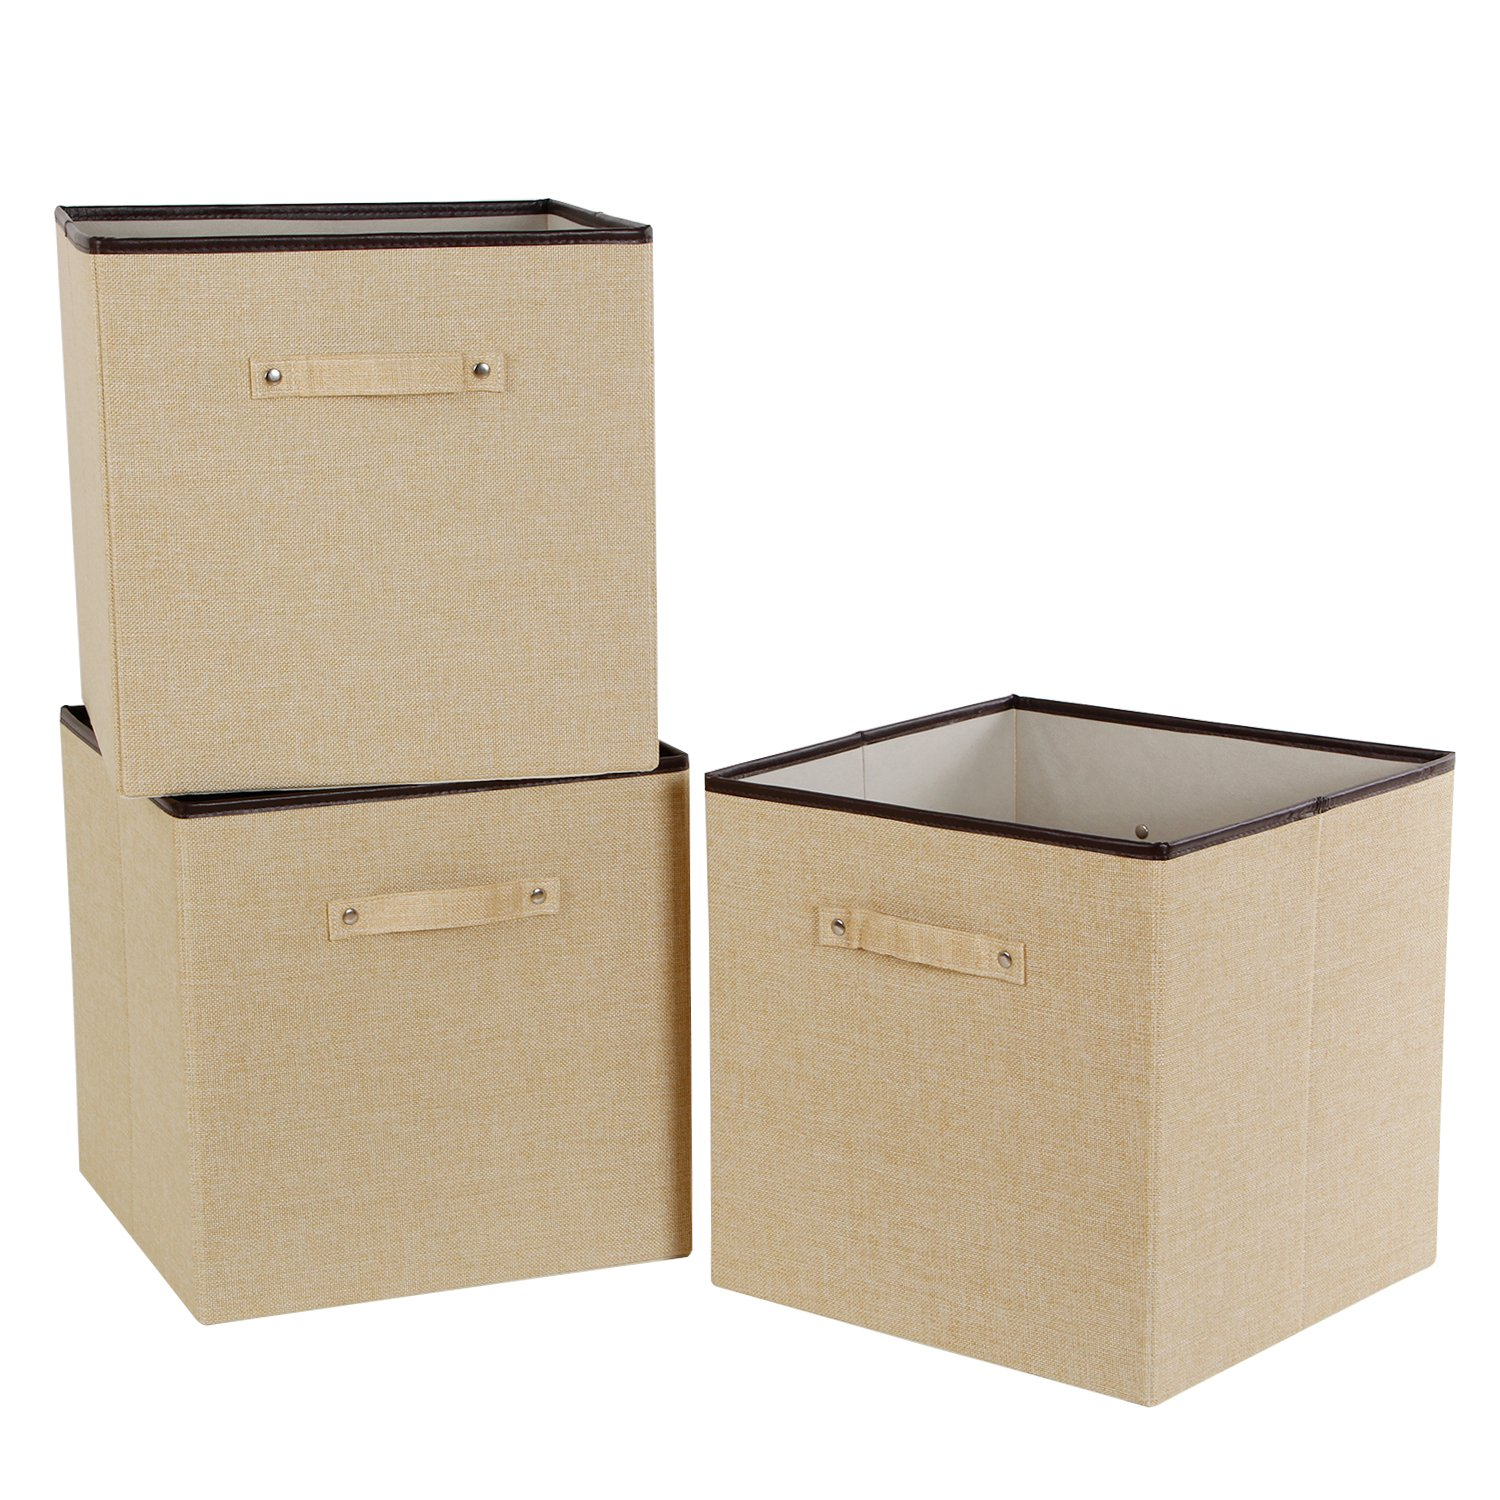 Lifewit 13'' x 13'' x 13'' Foldable Cube Storage Bins,Polyester Storage Basket for Shelves, Clothes, Kid Toys Cube Organizer, 3-Pack